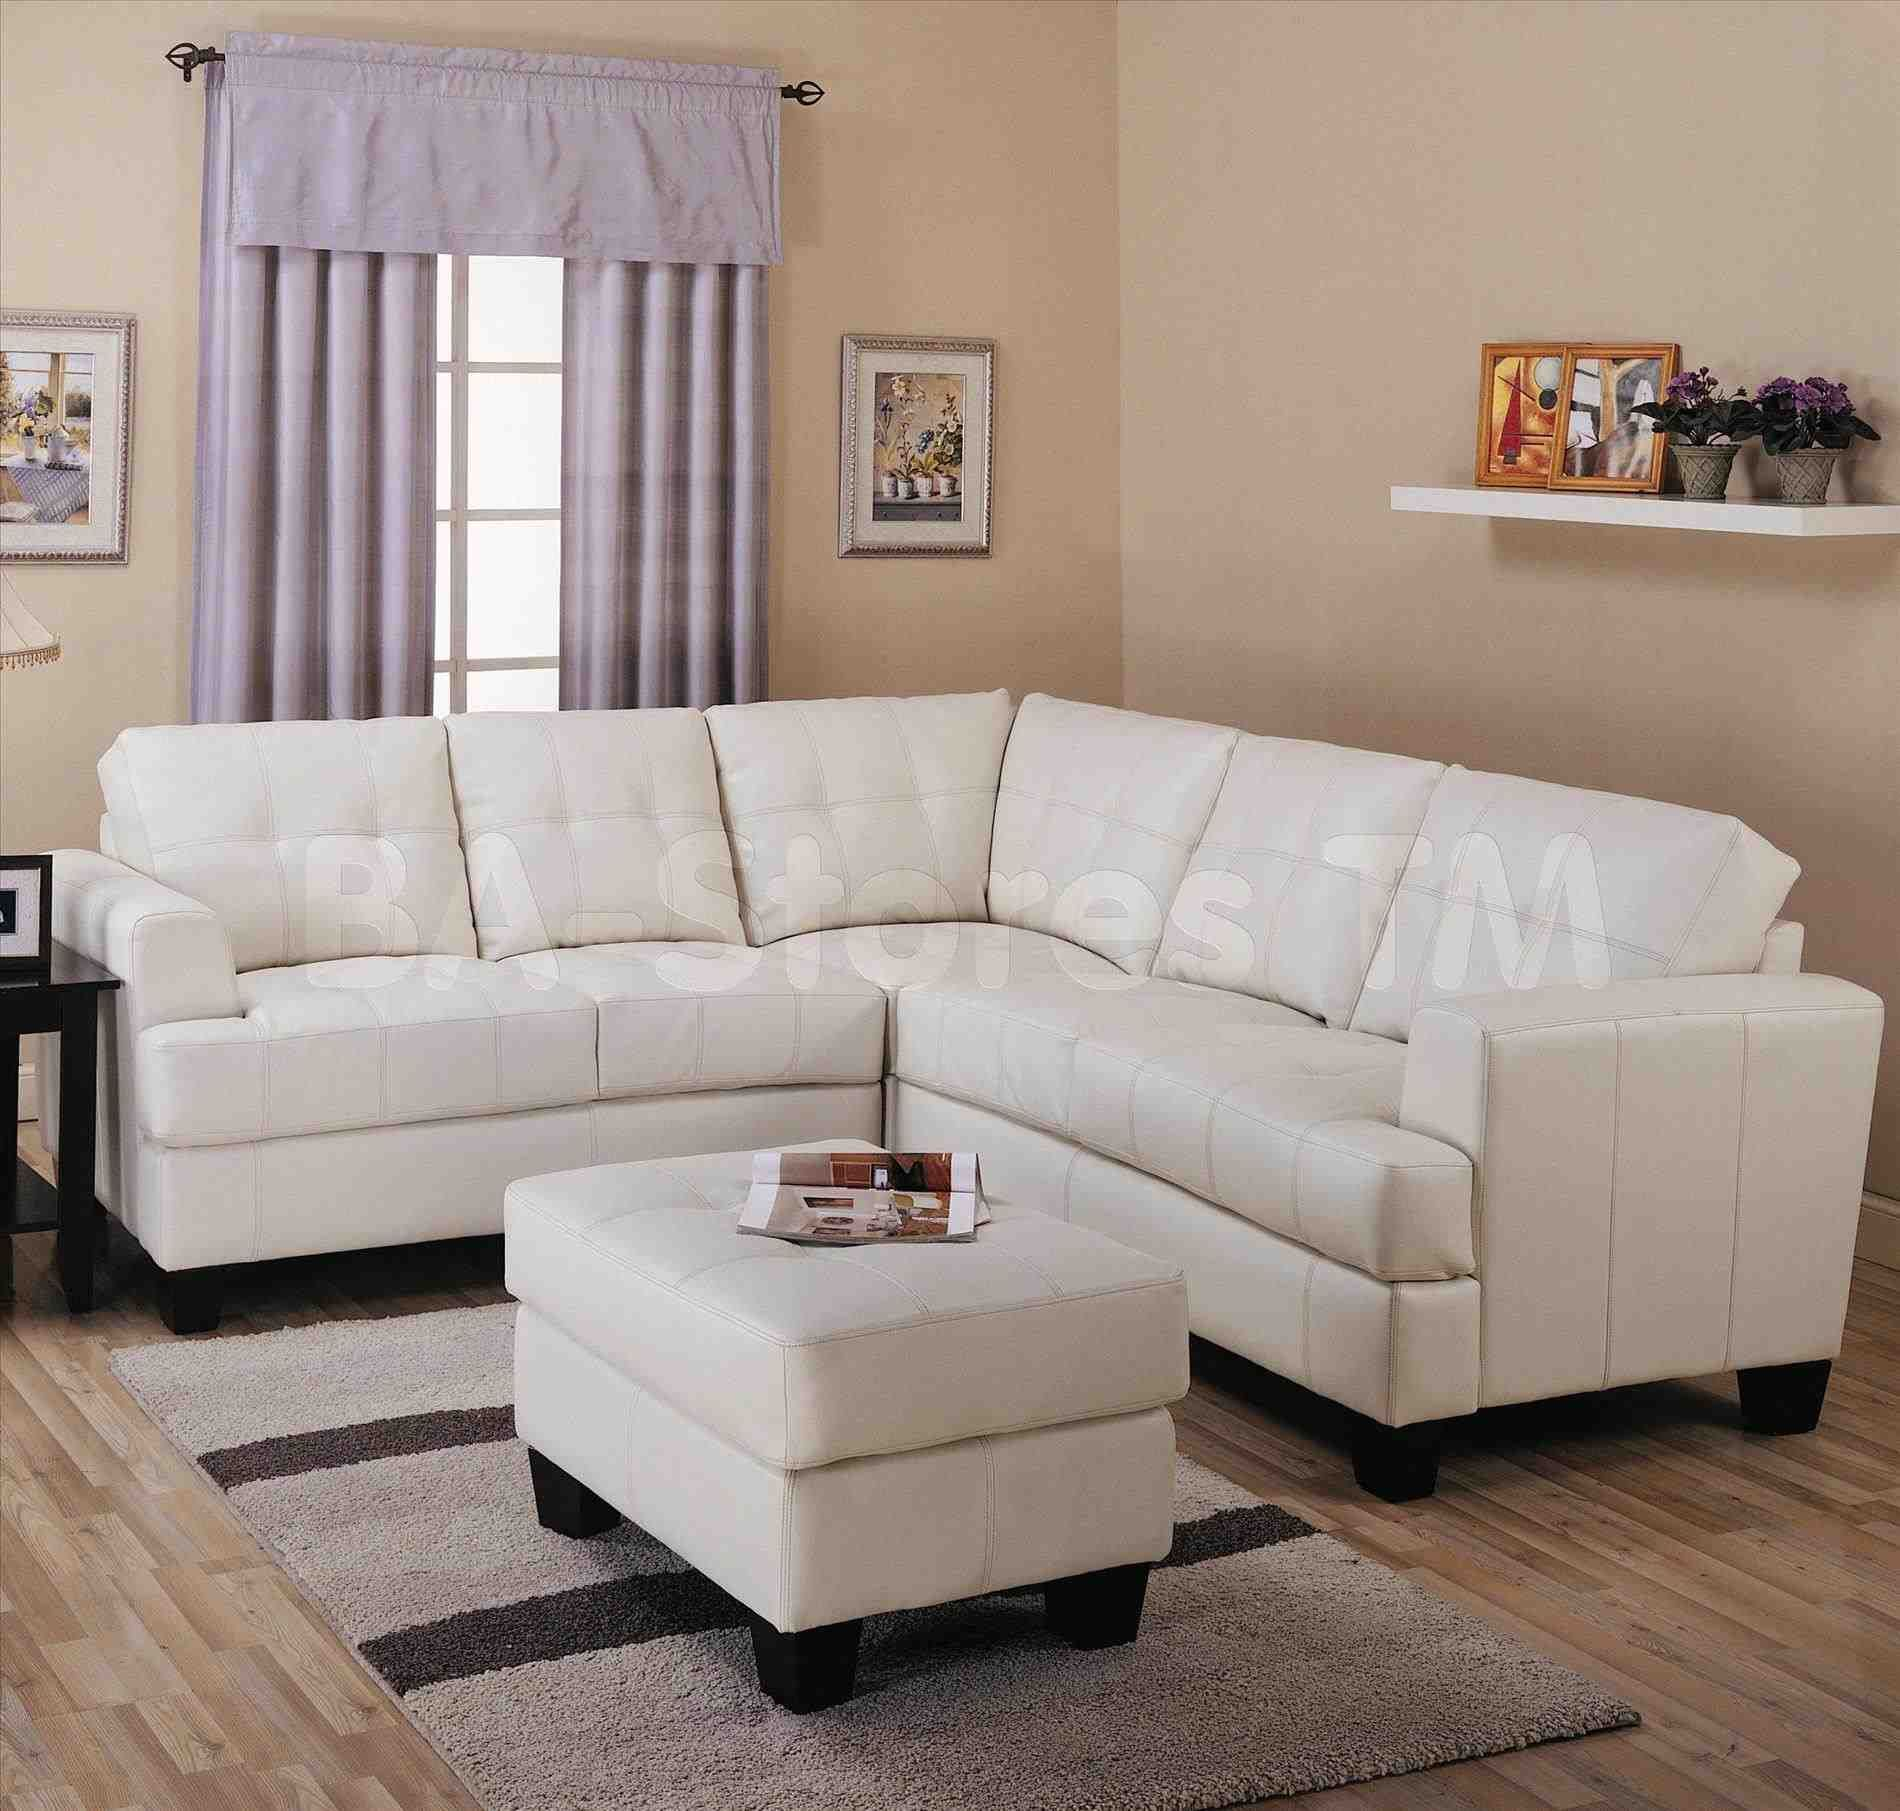 Cheap Sectionals Ontario Down Sectional Sofa Sofas Affordable With